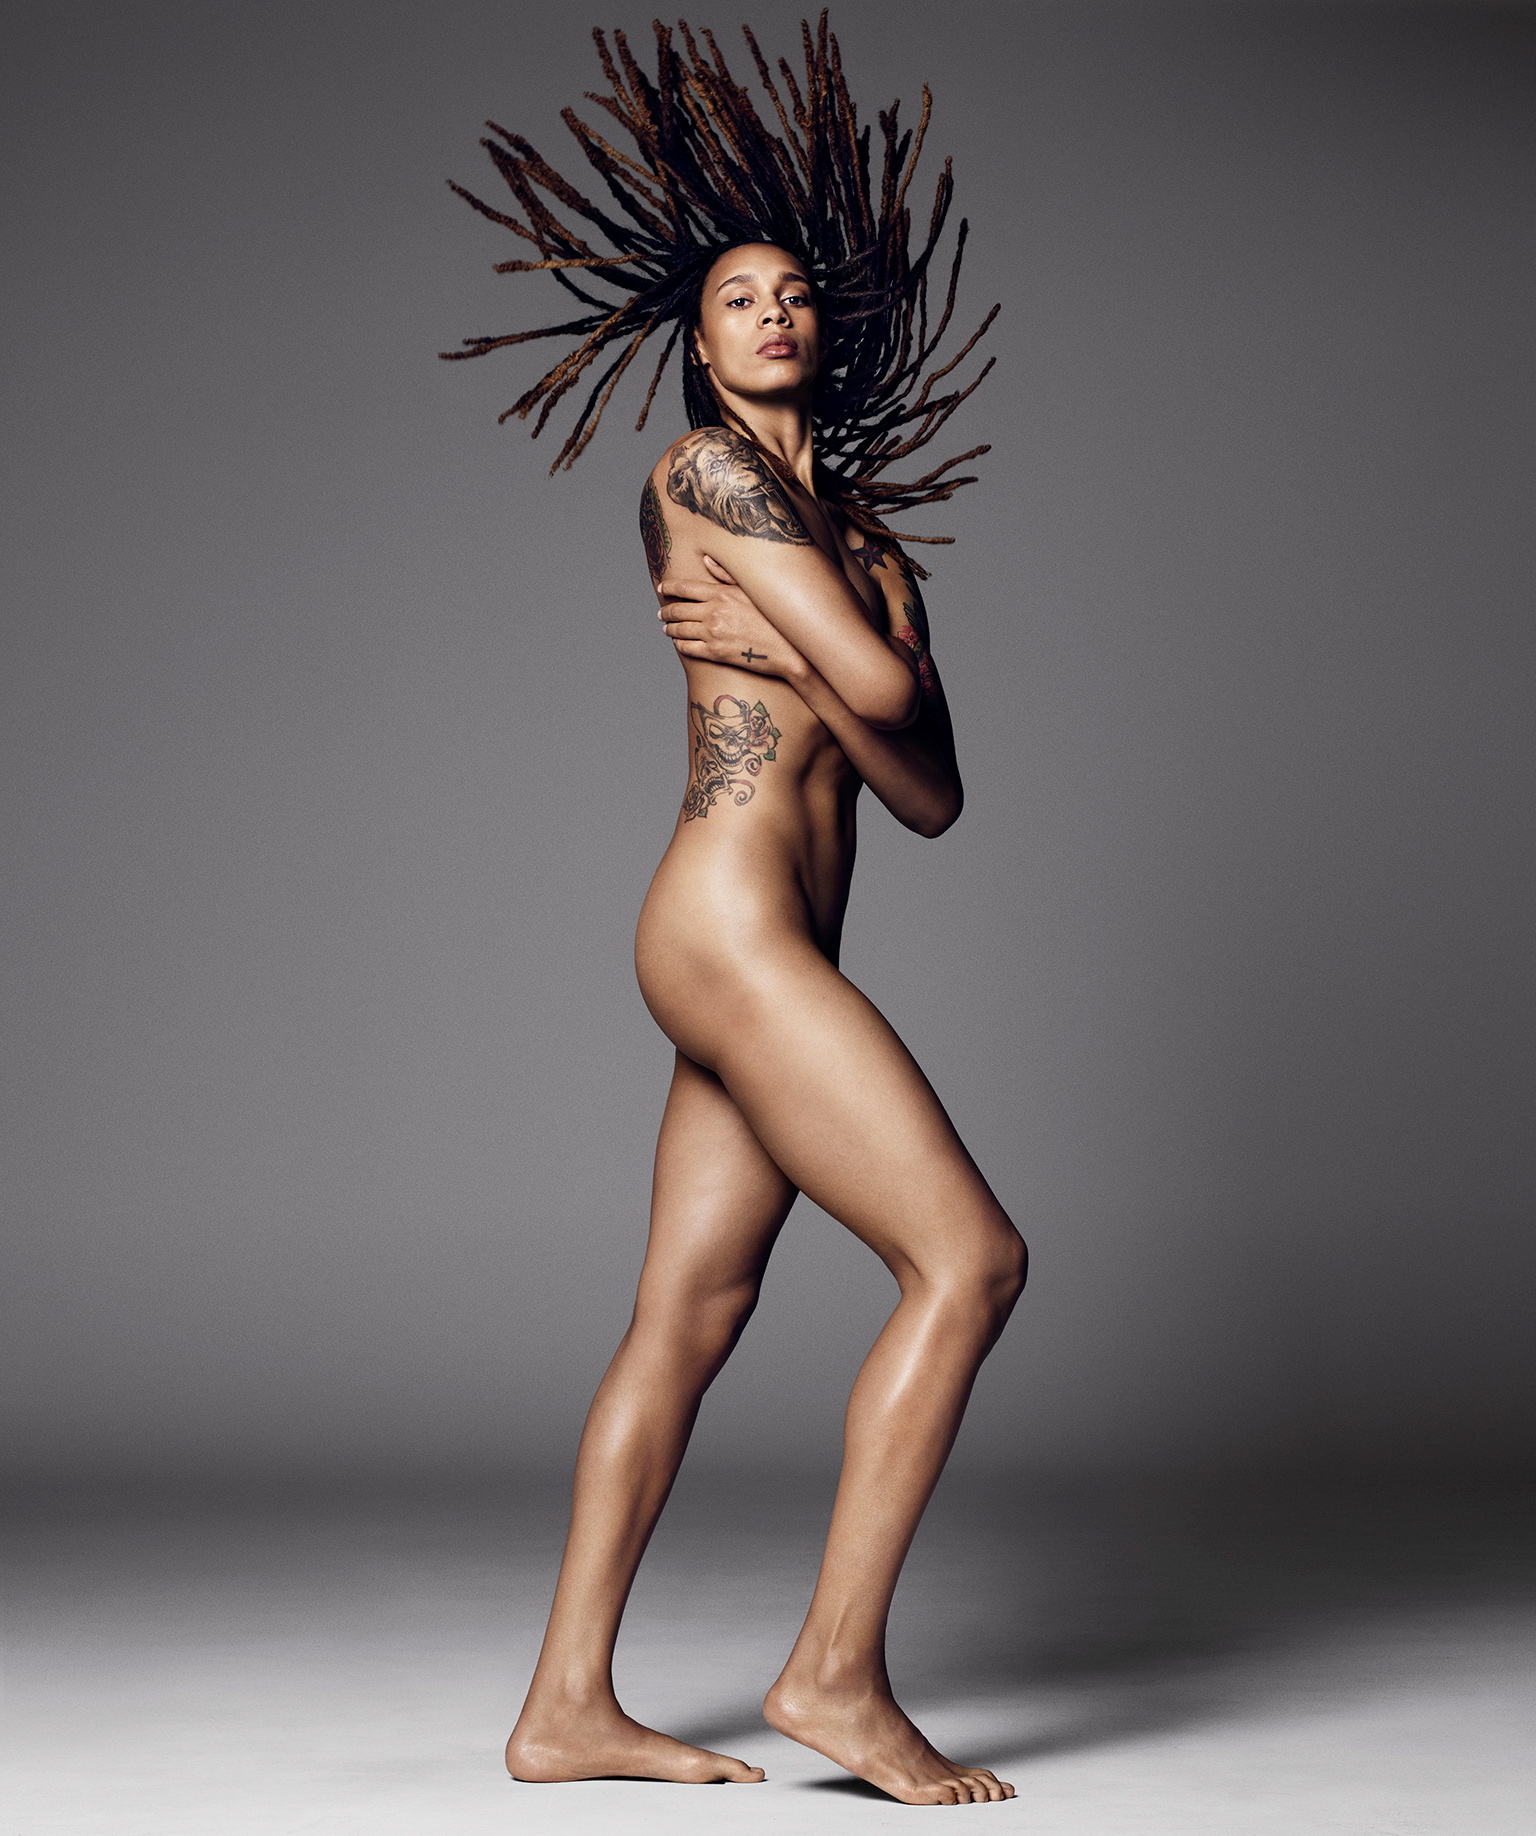 nude ESPN BODY ISSUE 2015 (34 pictures) Selfie, Instagram, braless